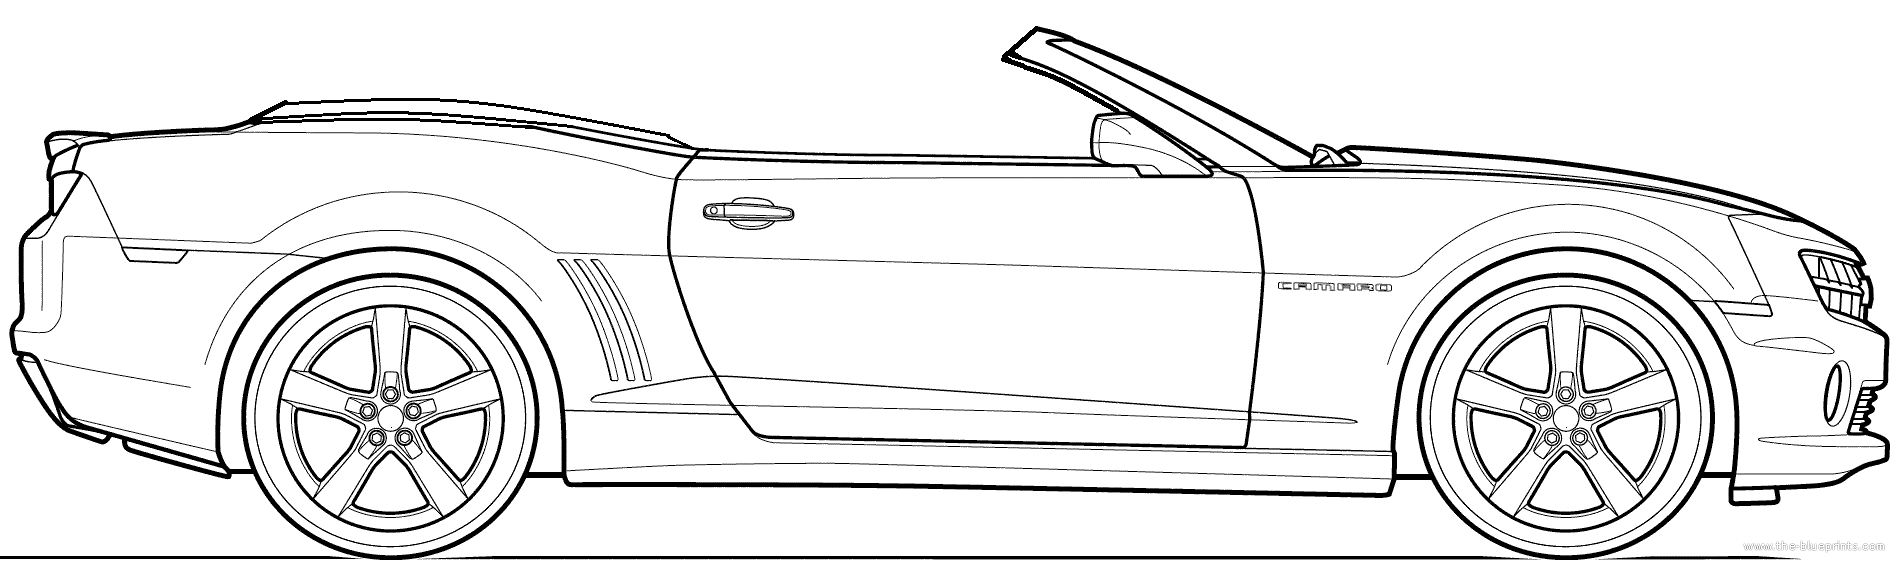 Chevrolet Camaro Coloring Pages Coloring Home